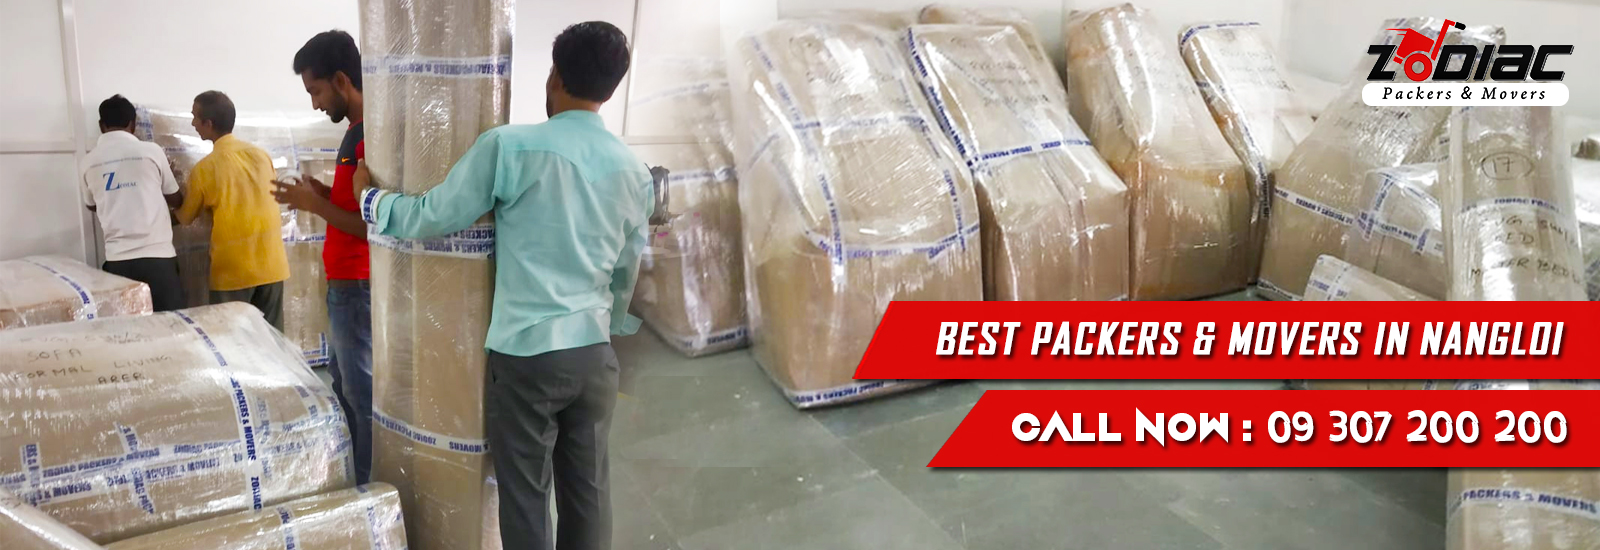 Packers and Movers in Nangloi